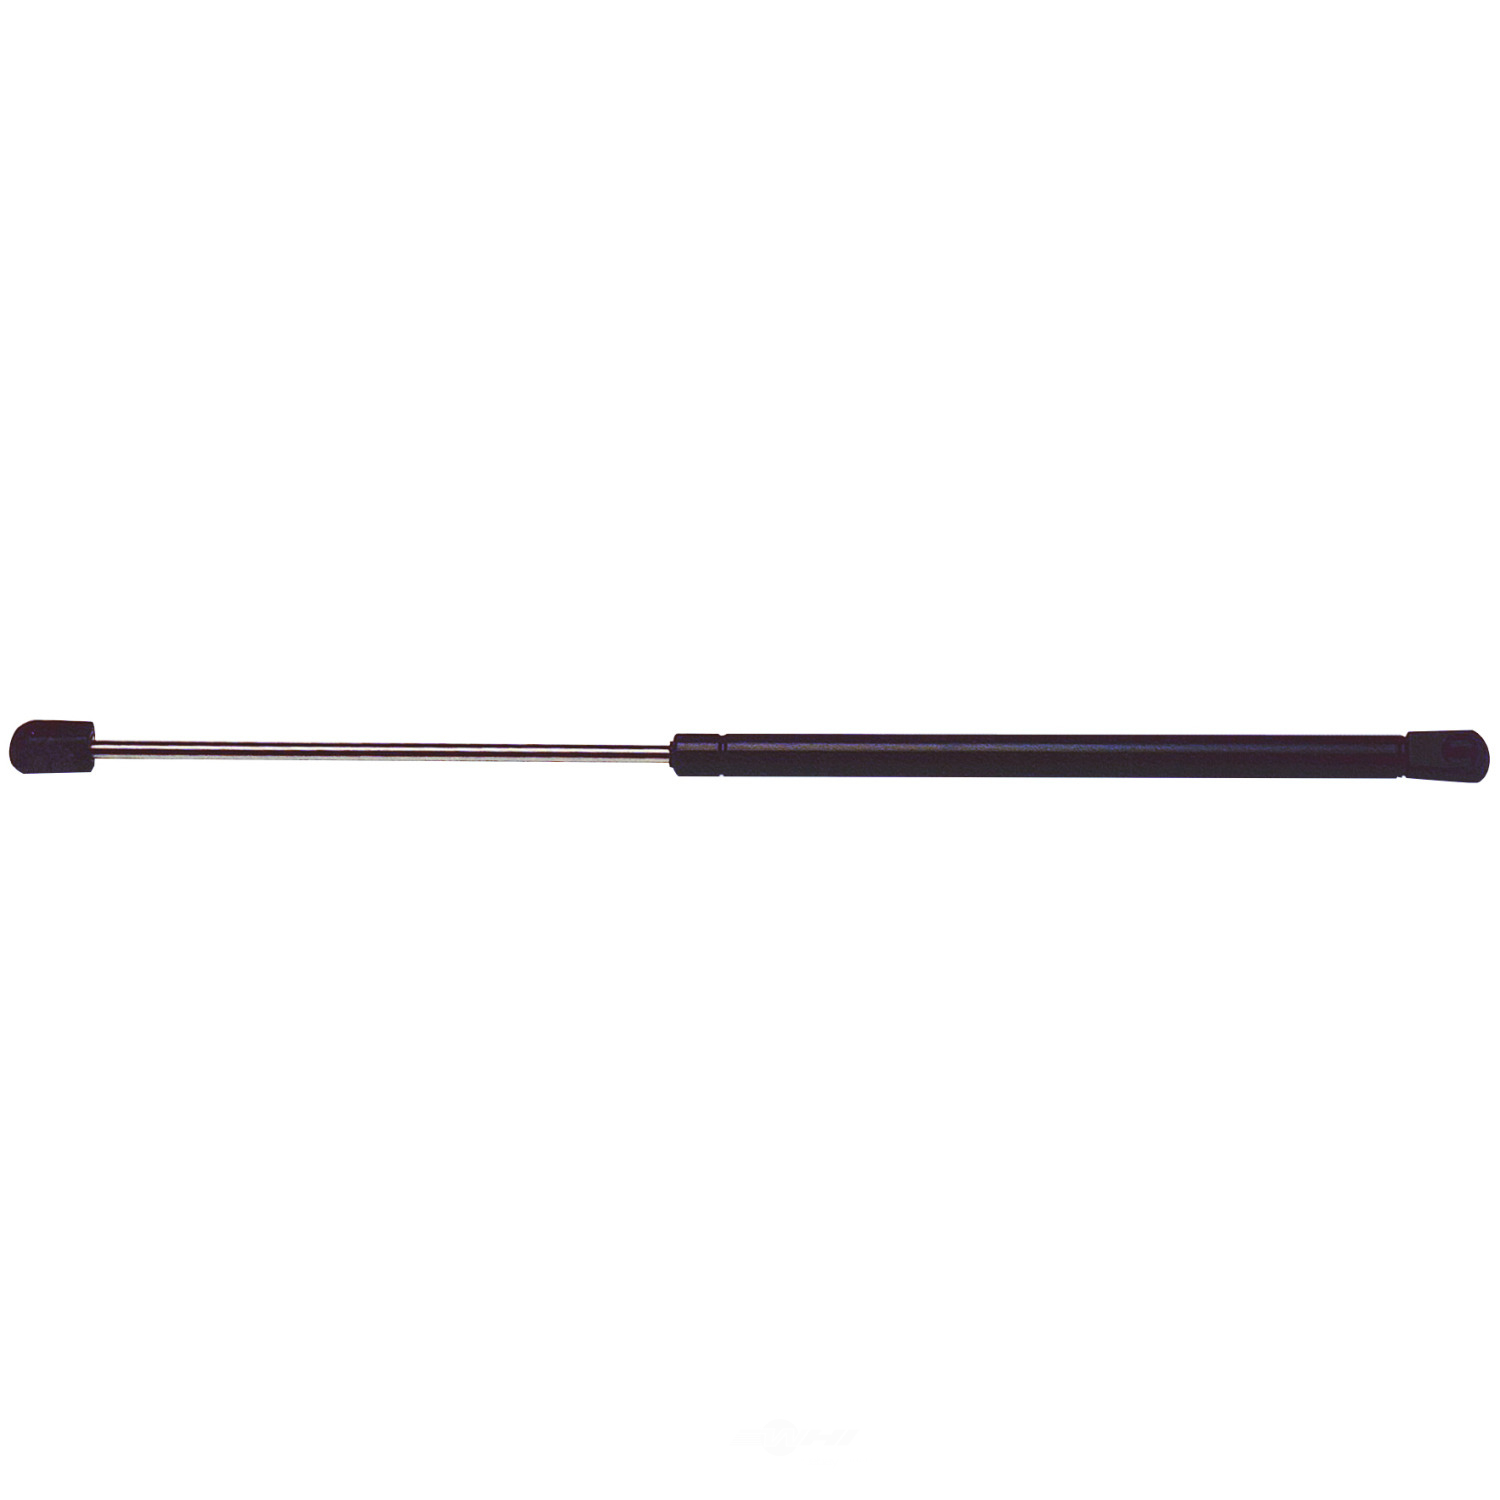 STRONG ARM - Back Glass Lift Support - STR 6194